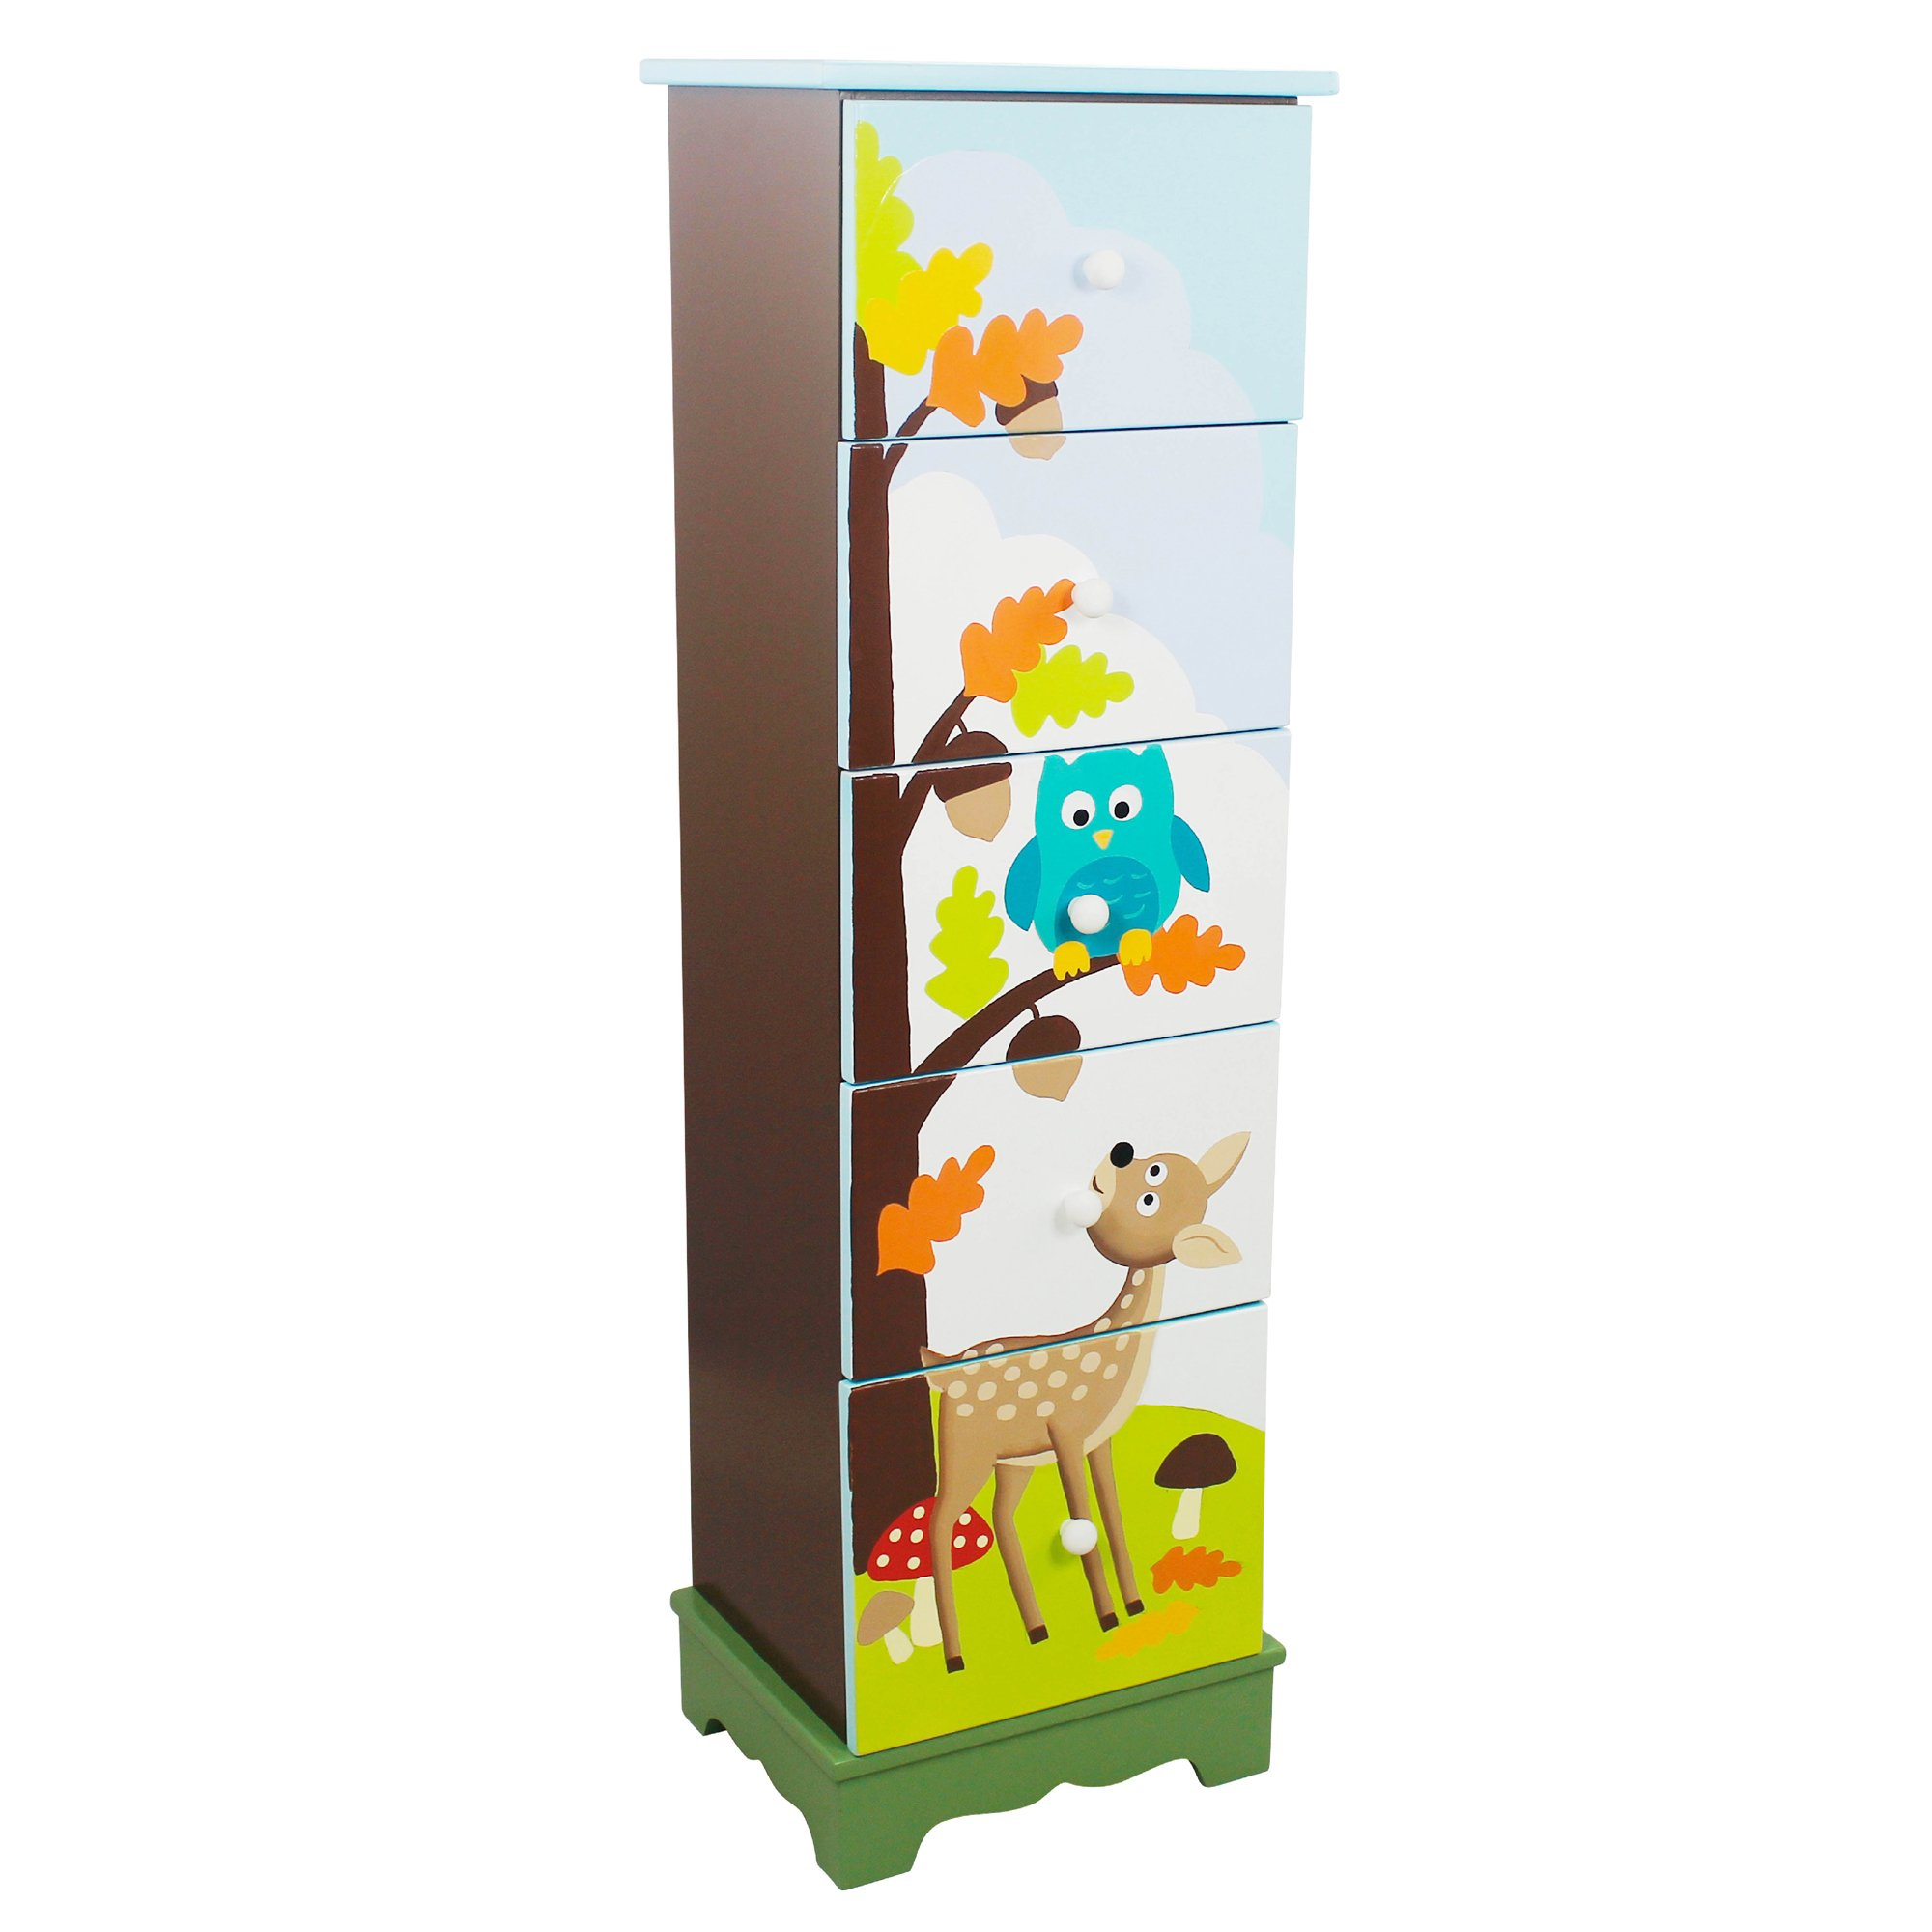 Fantasy Fields - Enchanted Woodland Thematic 5 Drawer Wooden Cabinet for Kids Storage | Imagination Inspiring  Hand Crafted & Painted Details | Non-Toxic, Lead Free Water-based Paint